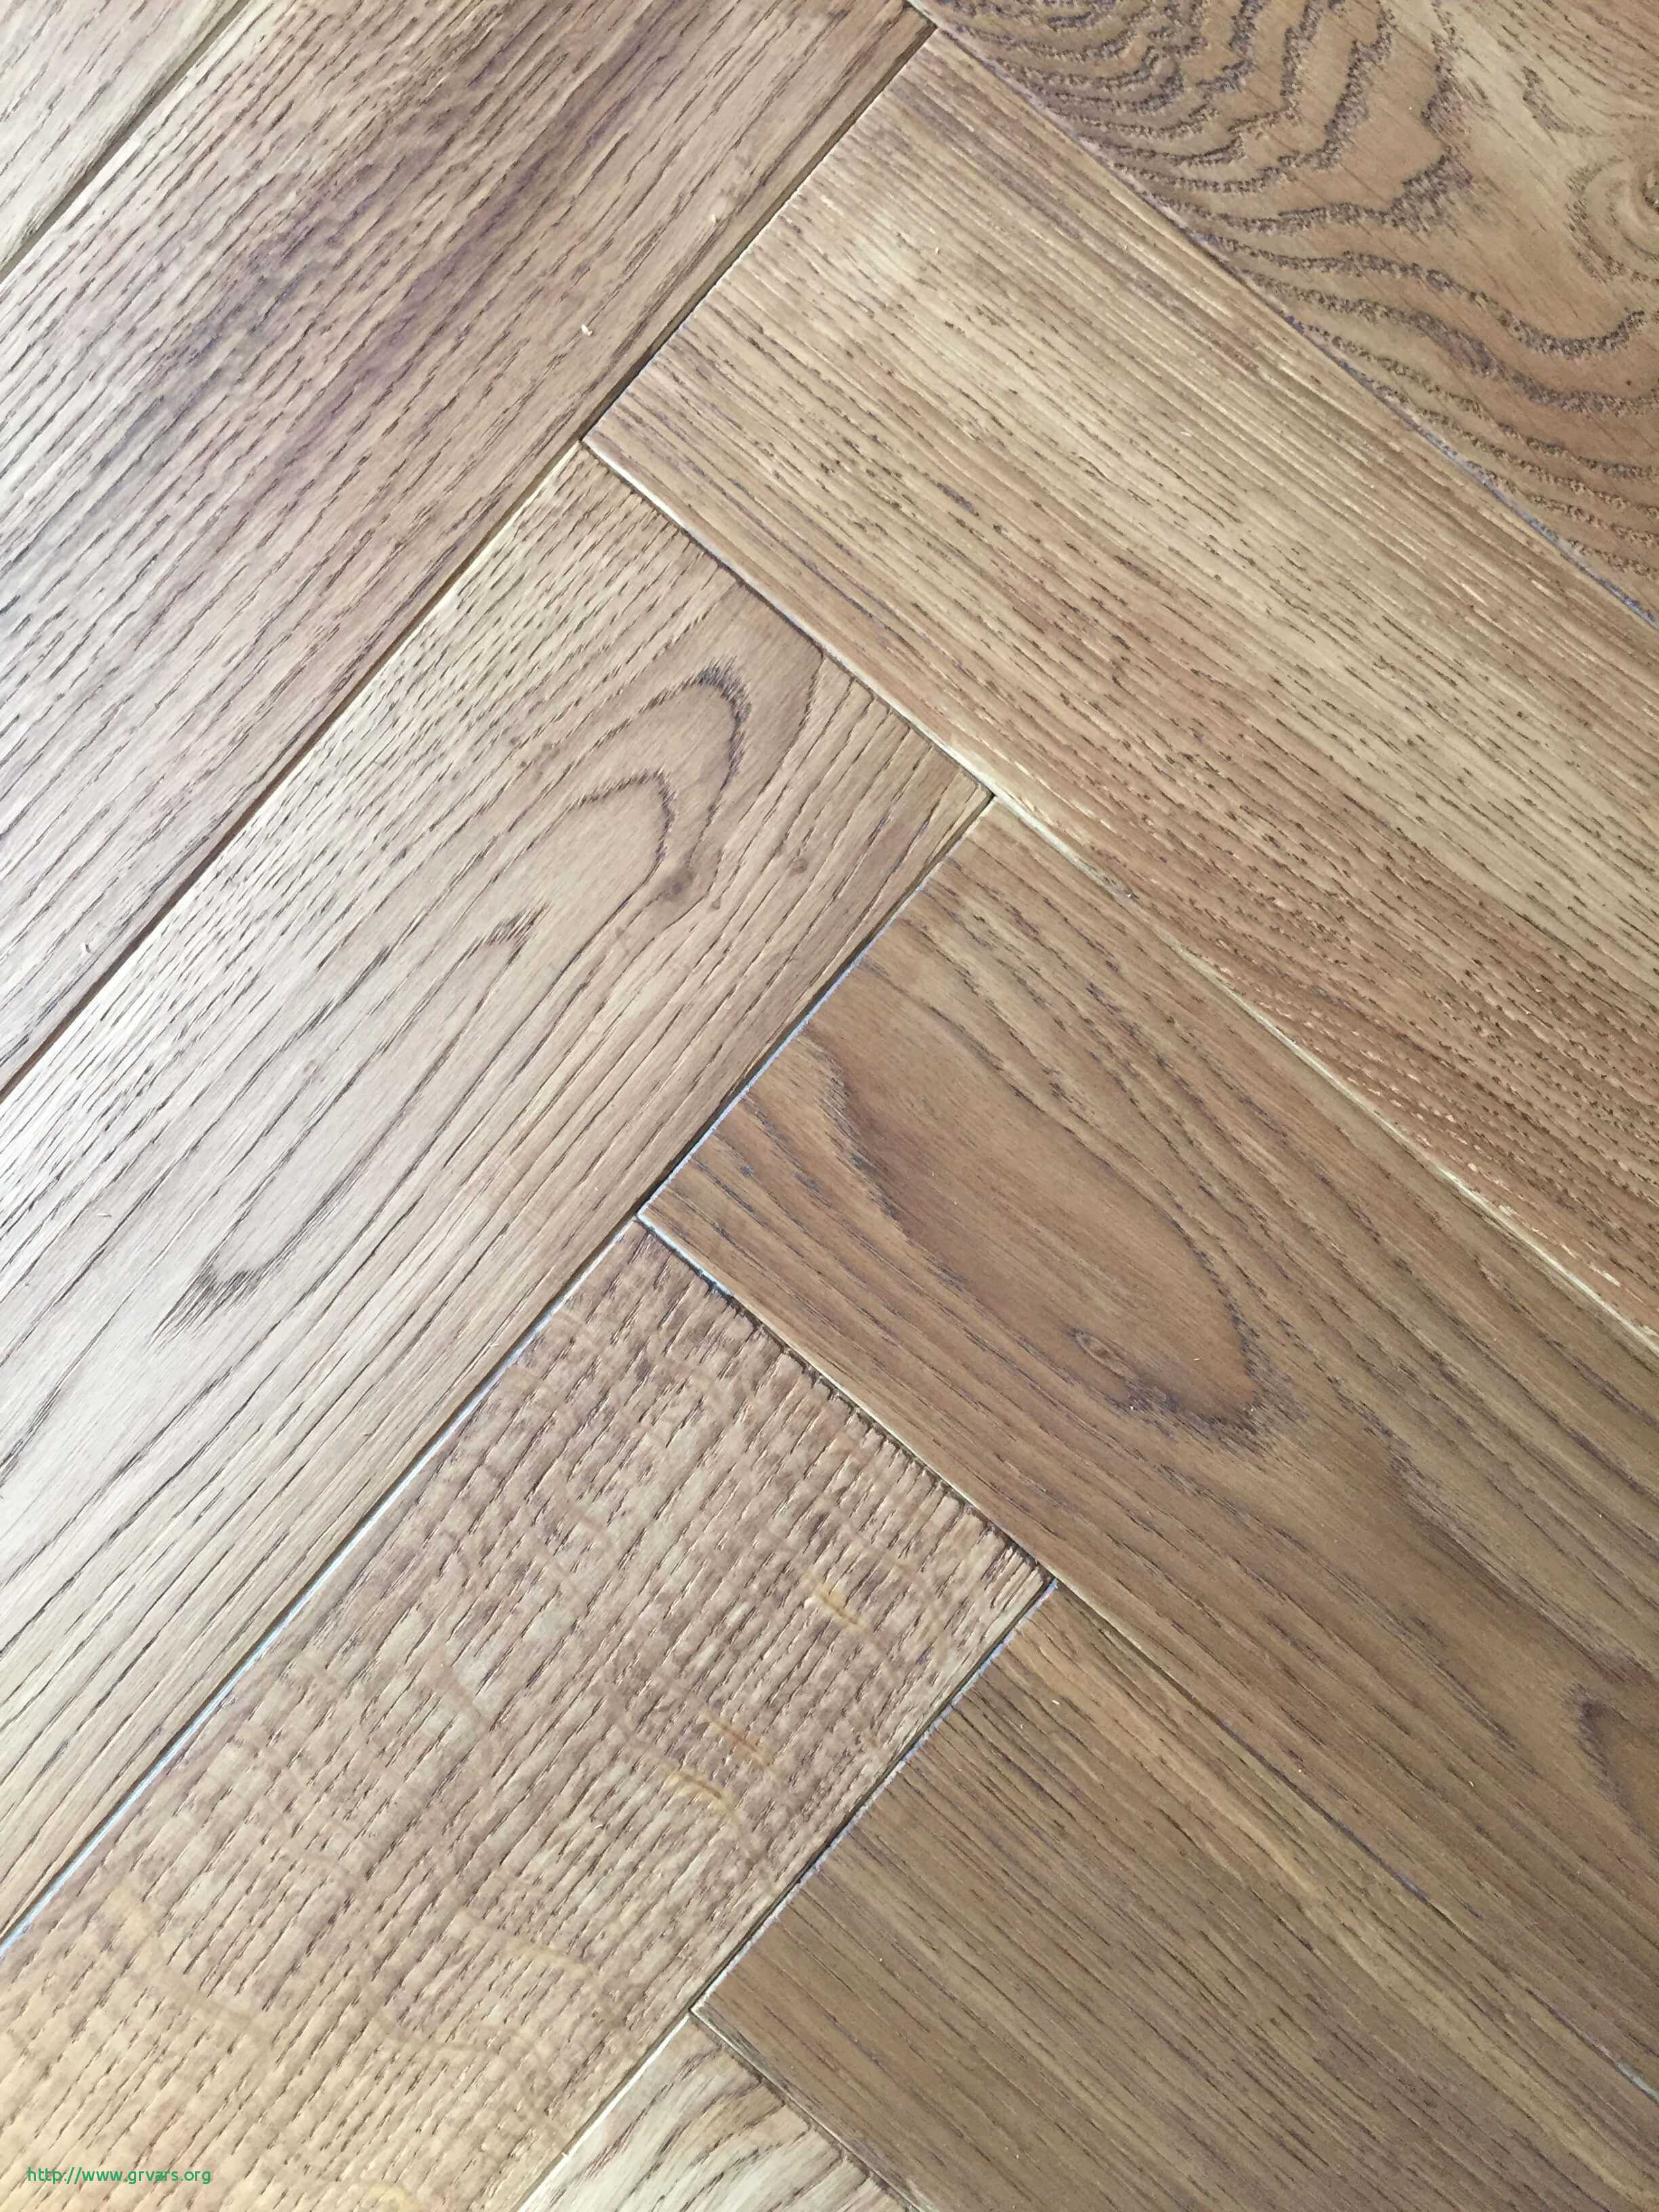 30 Spectacular Hardwood or Laminate Flooring Cost 2021 free download hardwood or laminate flooring cost of 21 luxe how much would laminate flooring cost ideas blog pertaining to wood how much would laminate flooring cost inspirant laminate flooring ideas